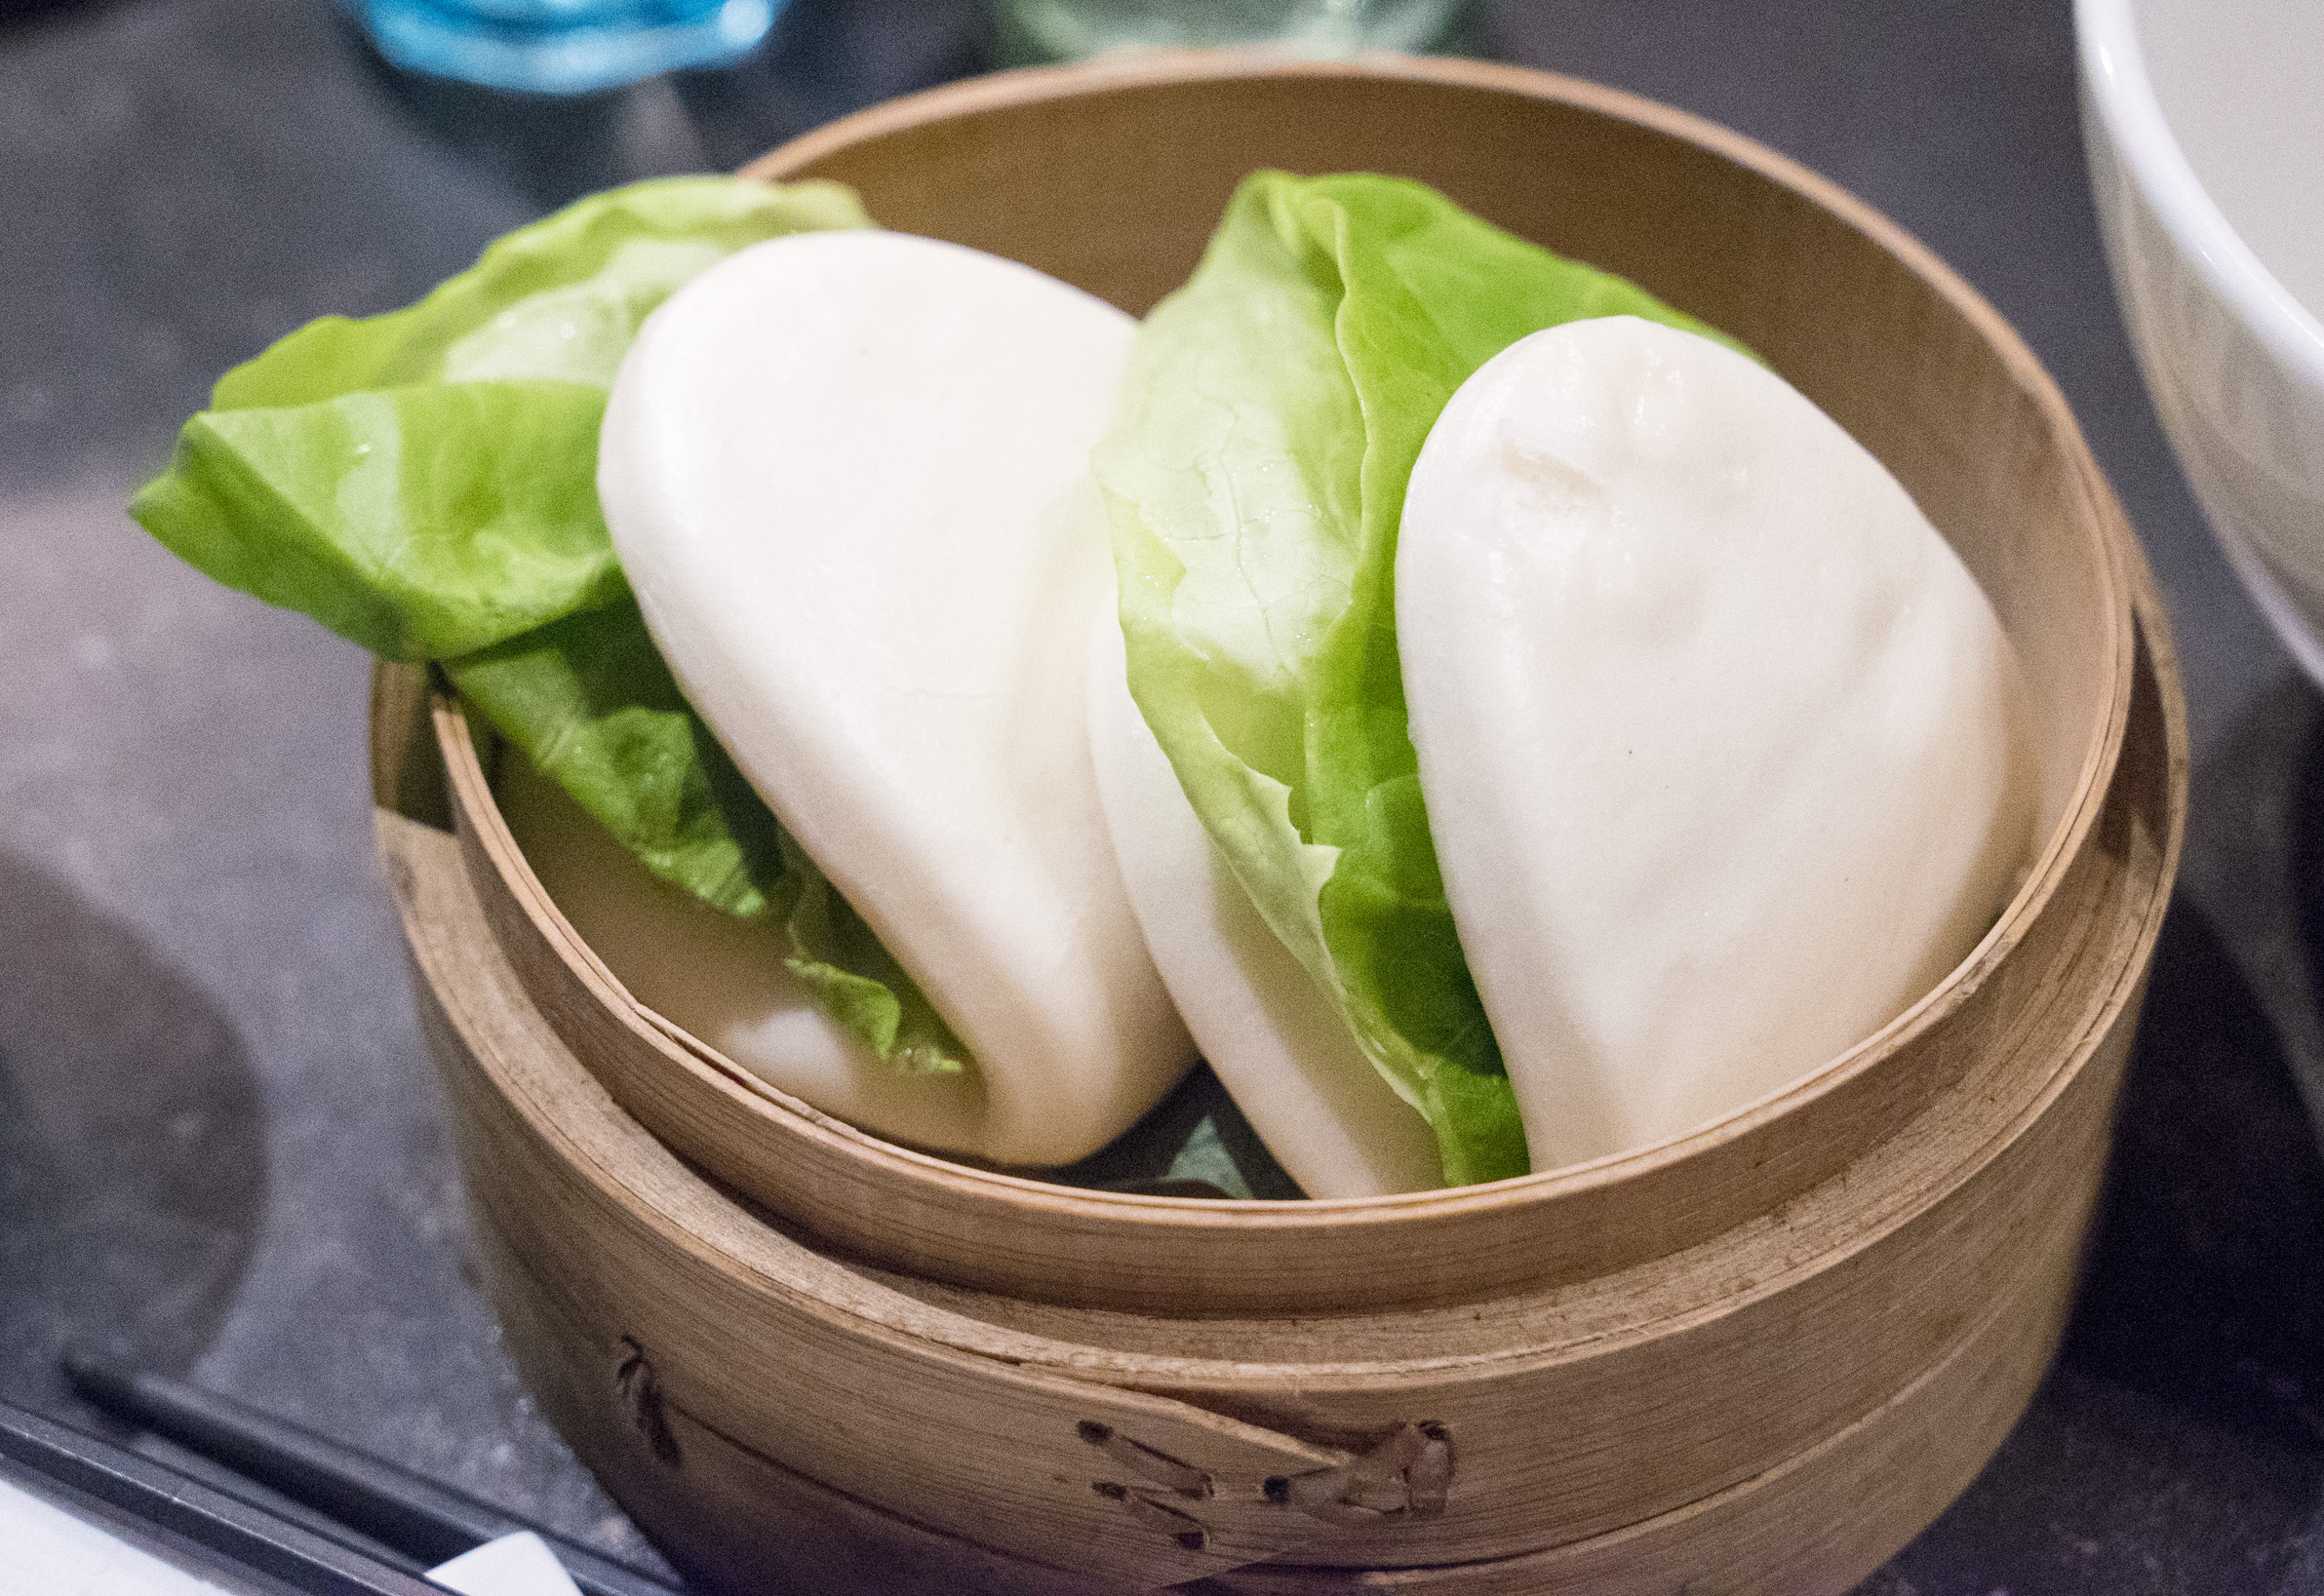 We had a couple of apps too. The pork buns were pretty good, but the ...